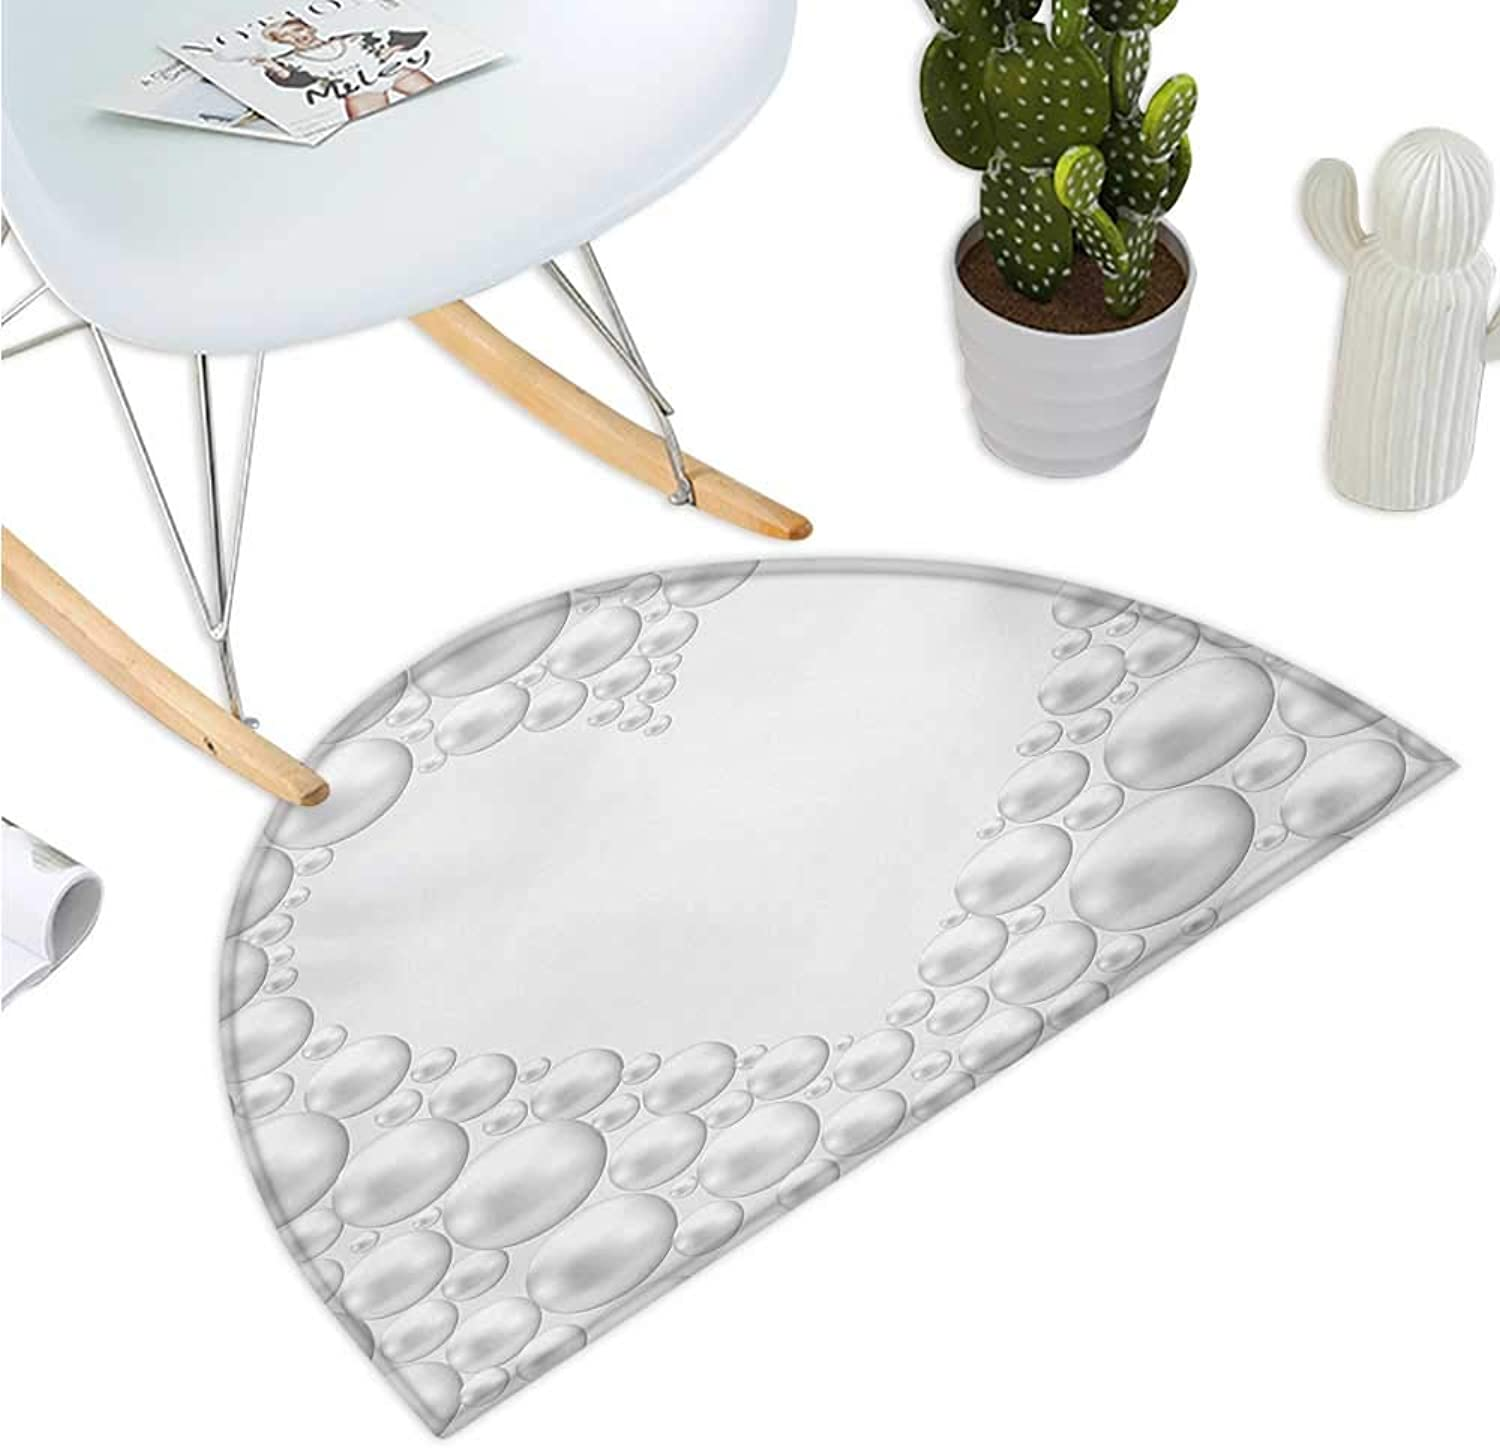 Pearls Semicircular Cushion Frame with Pearls in Heart Shape Stylish Bridal Accessories Monochromic Artwork Print Entry Door Mat H 35.4  xD 53.1  White